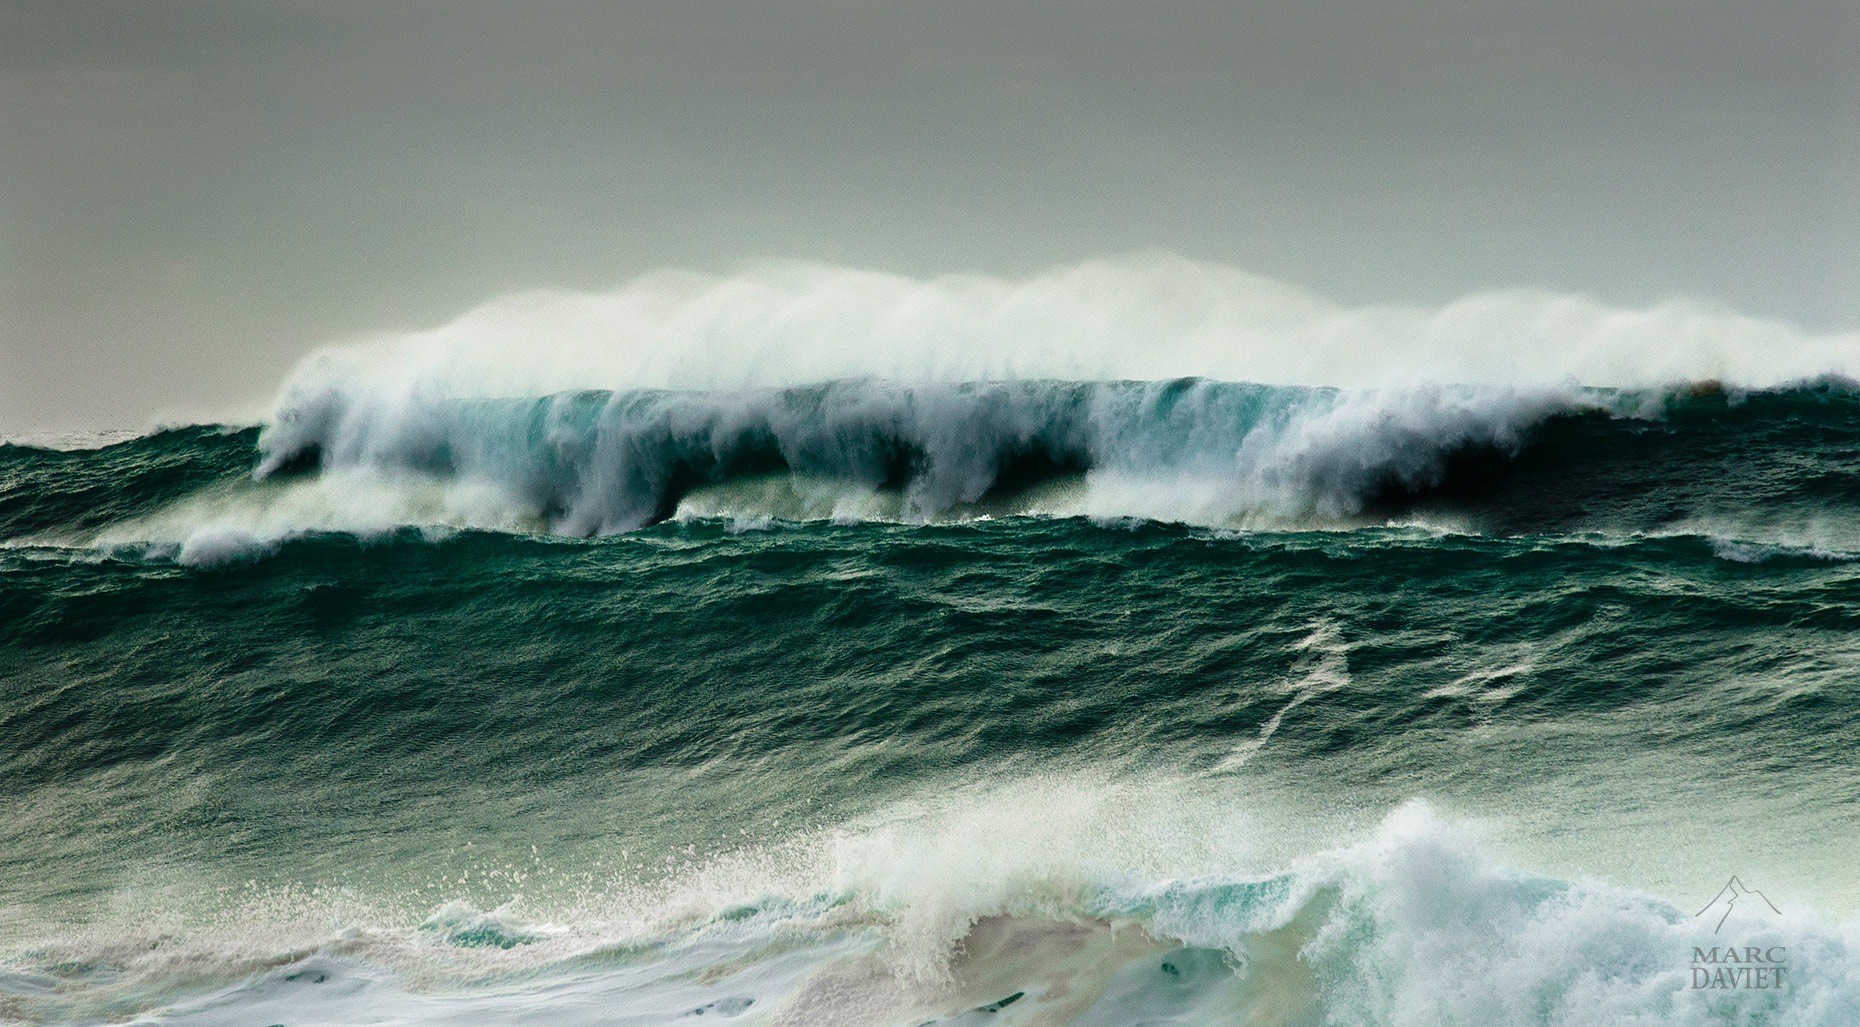 Waves - Marc Daviet Photography